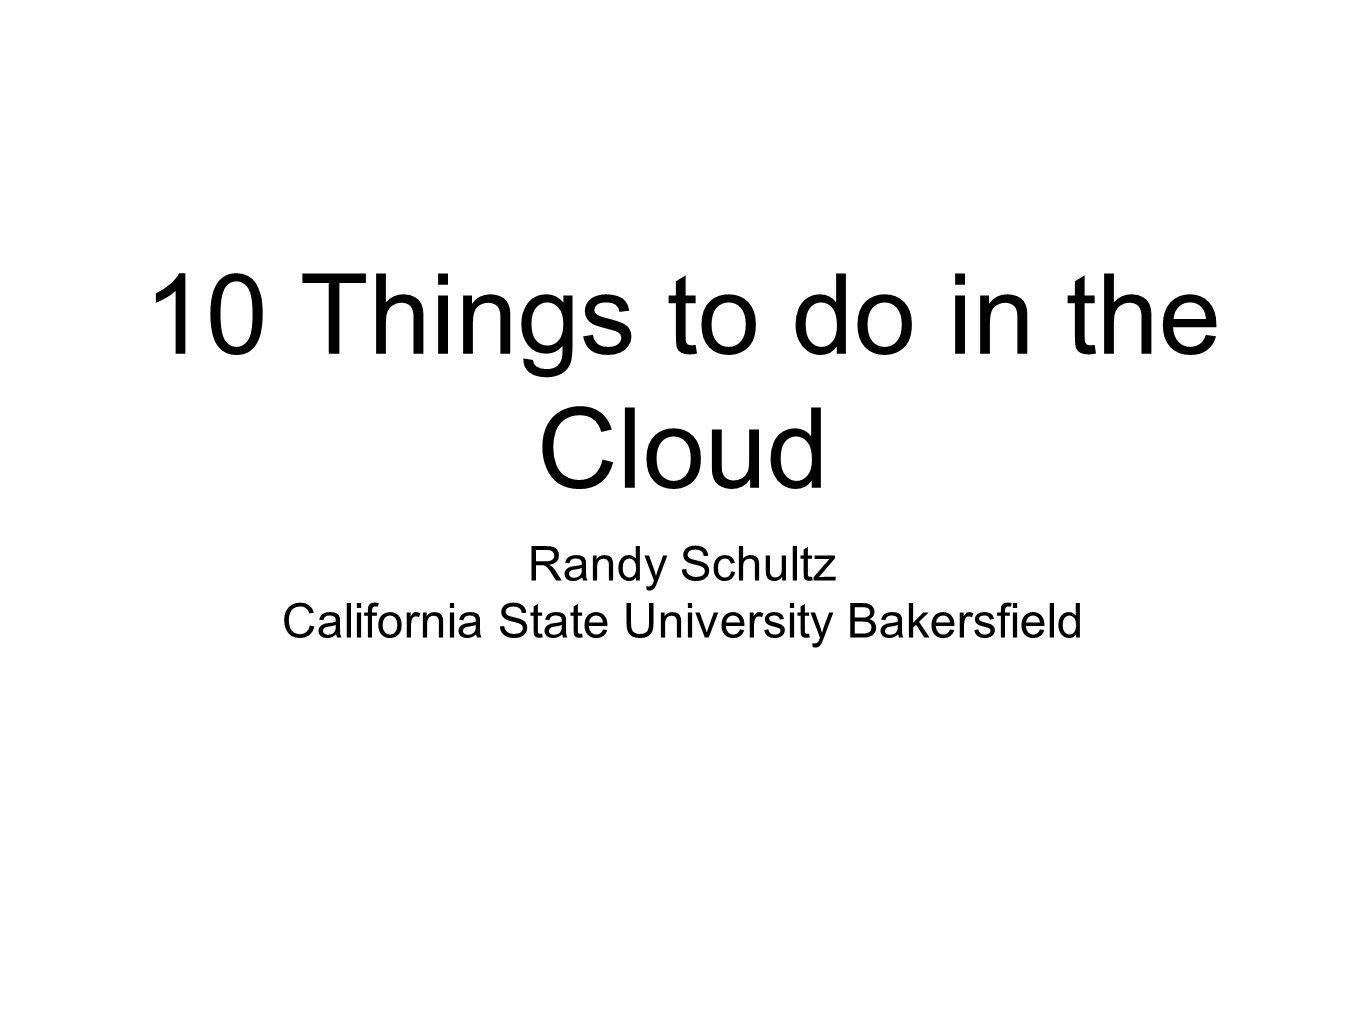 10 Things to do in the Cloud Randy Schultz California State University Bakersfield